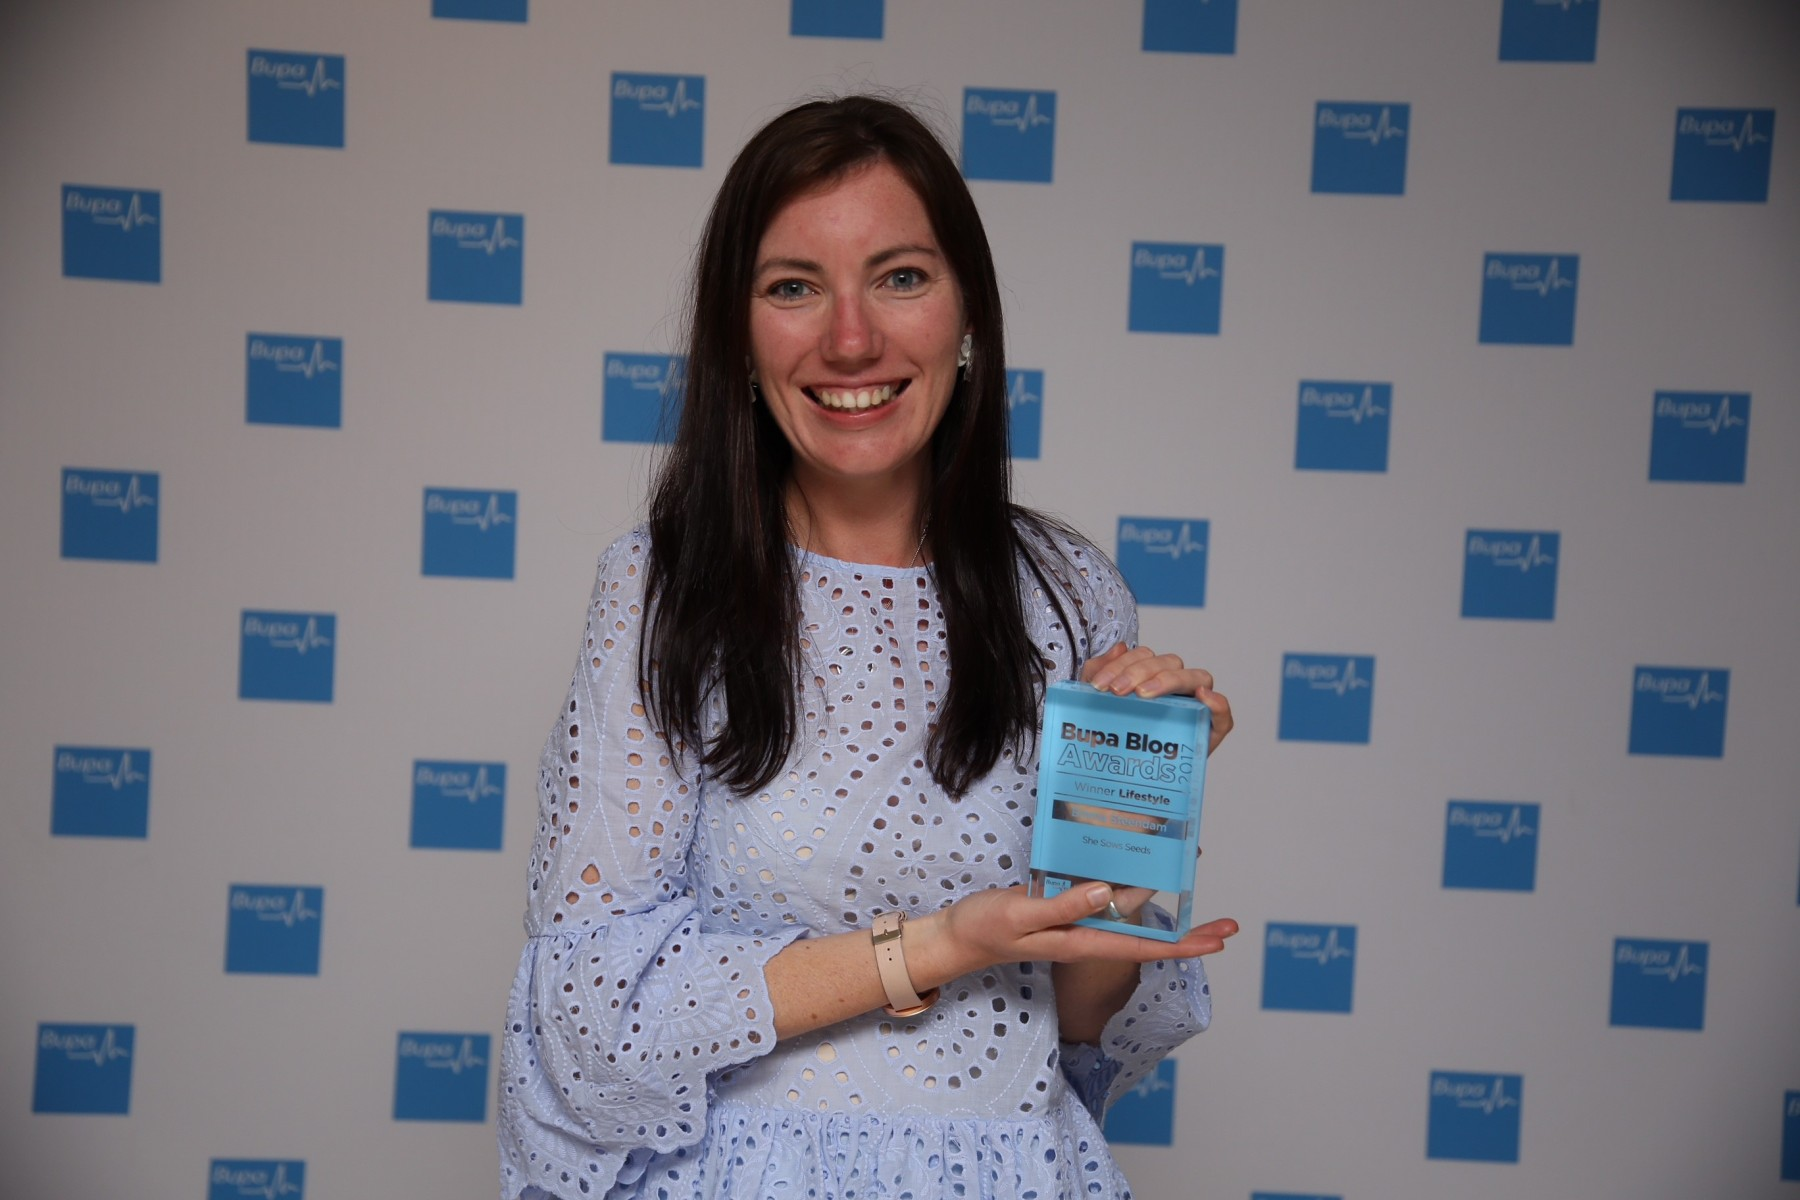 She Sows Seeds Bupa Blog Awards